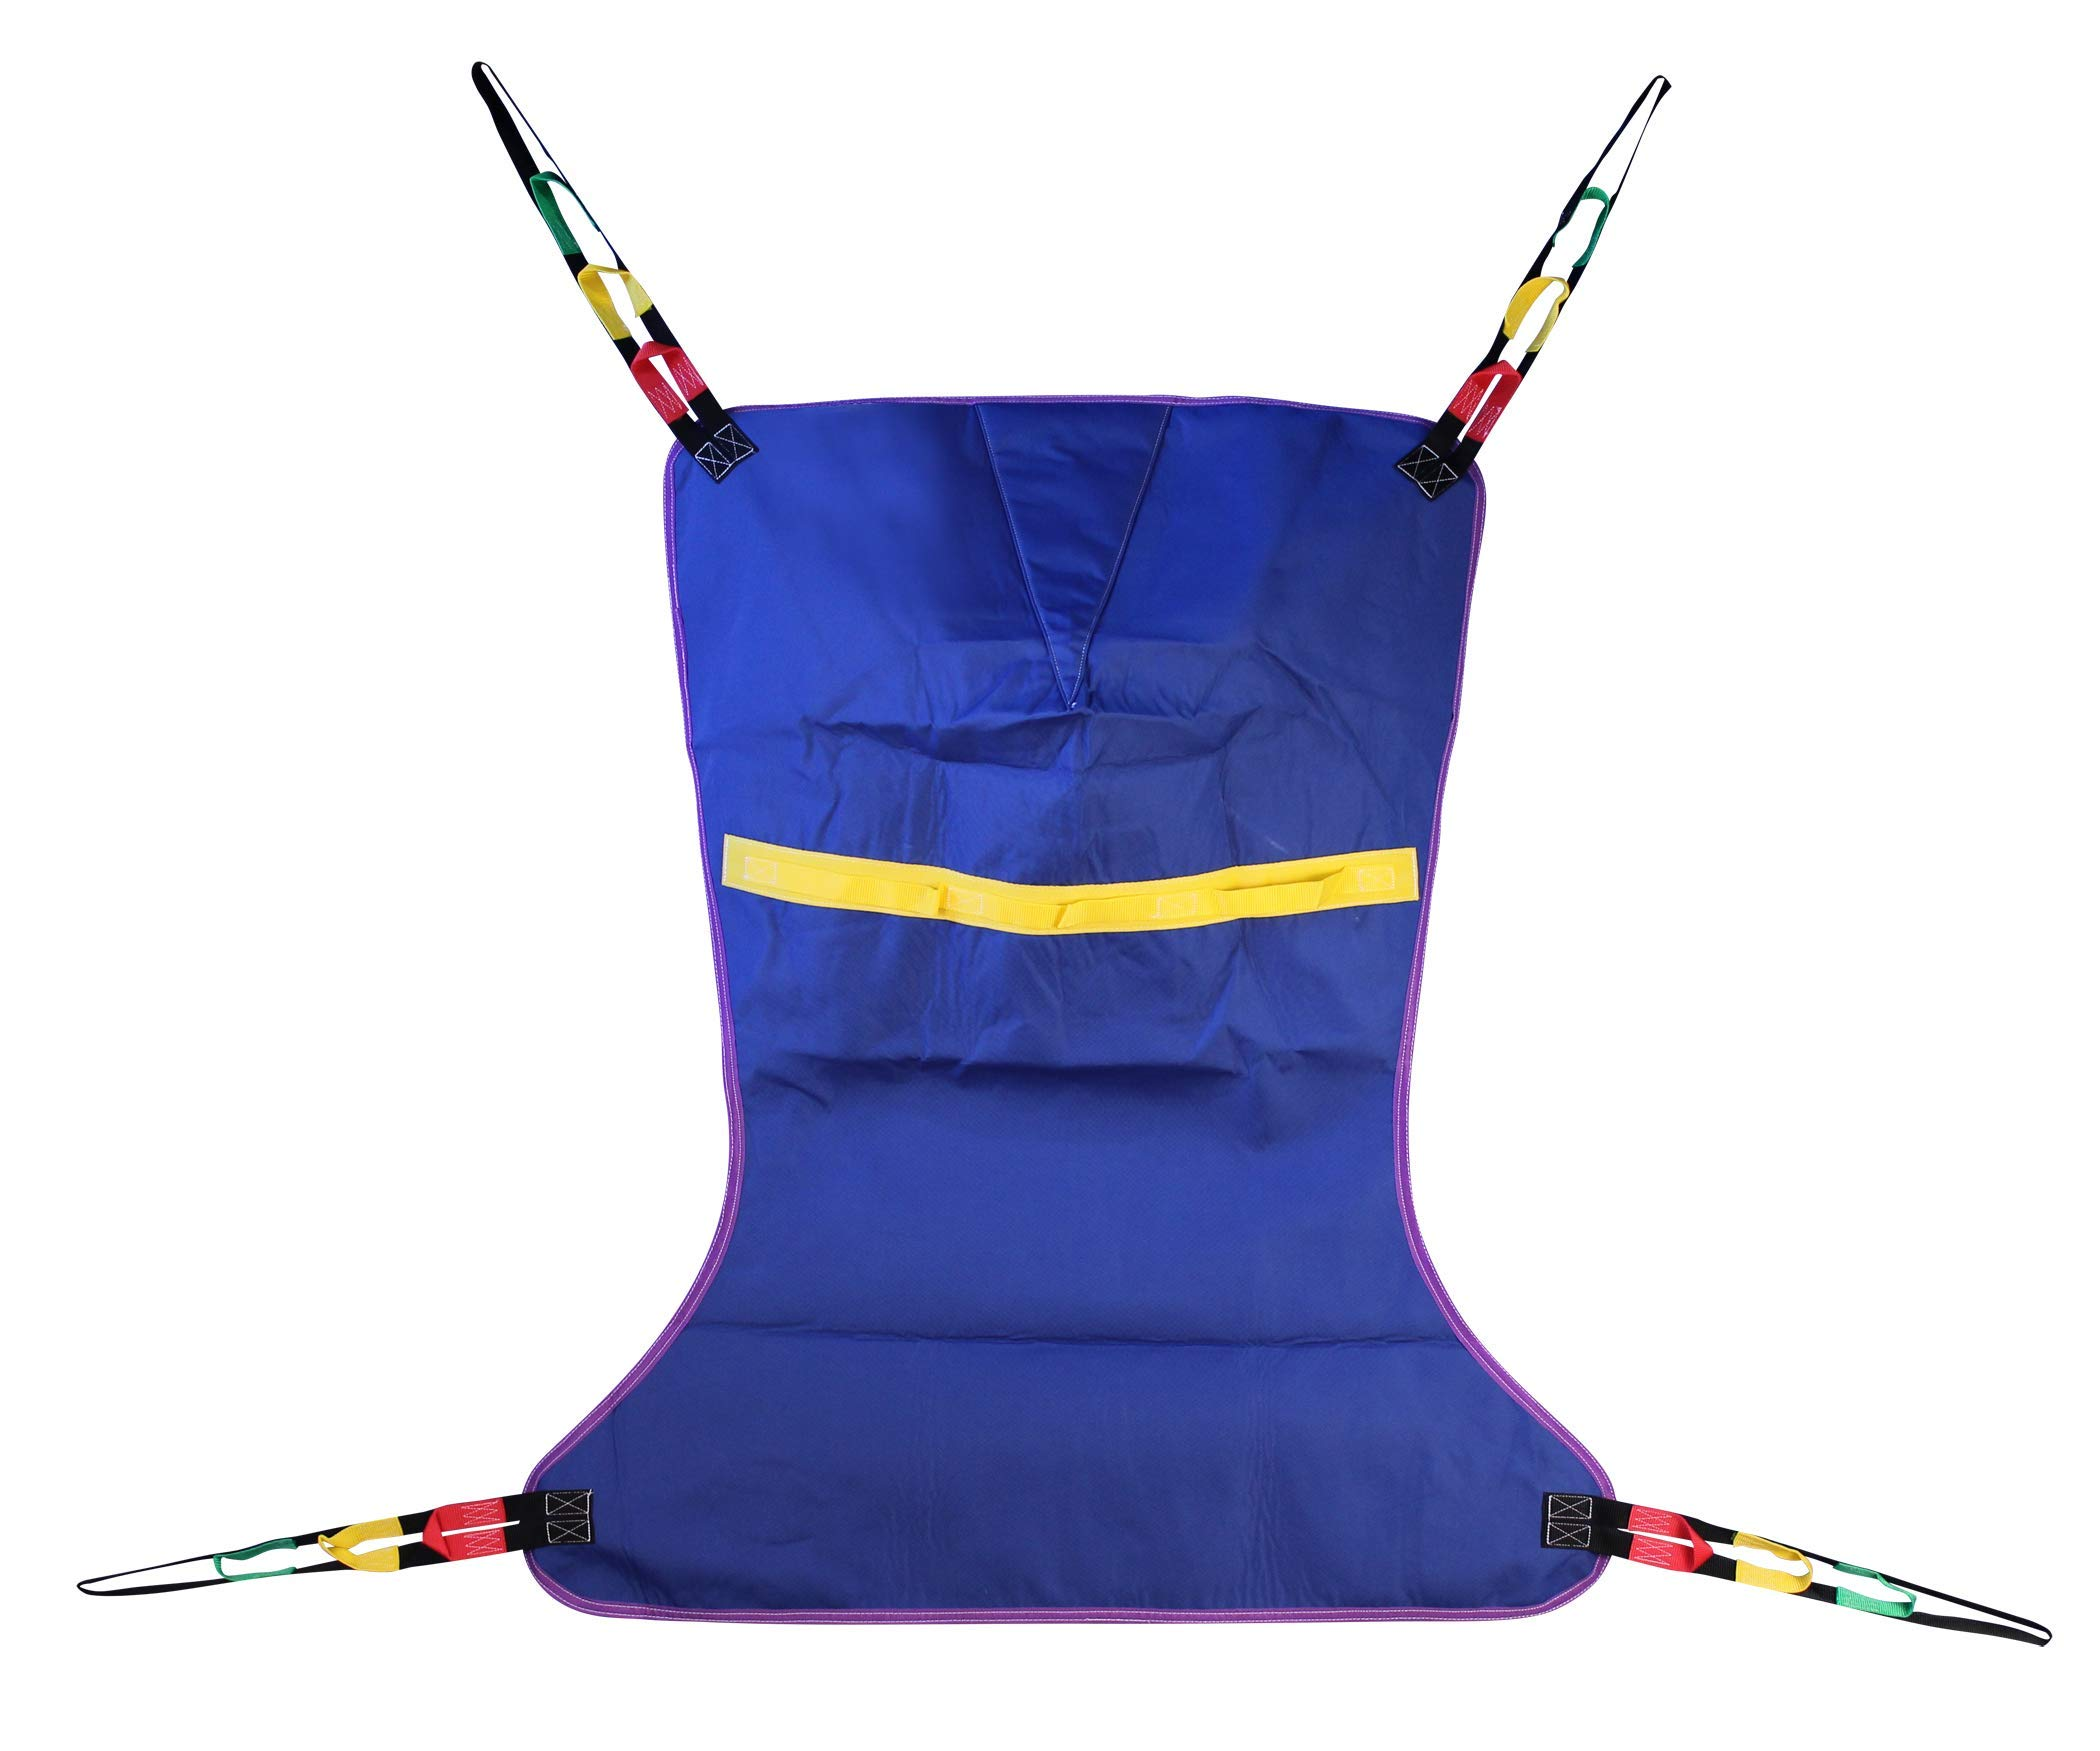 ProHeal Universal Full Body Lift Sling, XX Large, 64''L x 45'' - Solid Fabric Polyester Slings for Patient Lifts - Compatible with Hoyer, Invacare, McKesson, Drive, Lumex, Medline, Joerns and More by ProHeal